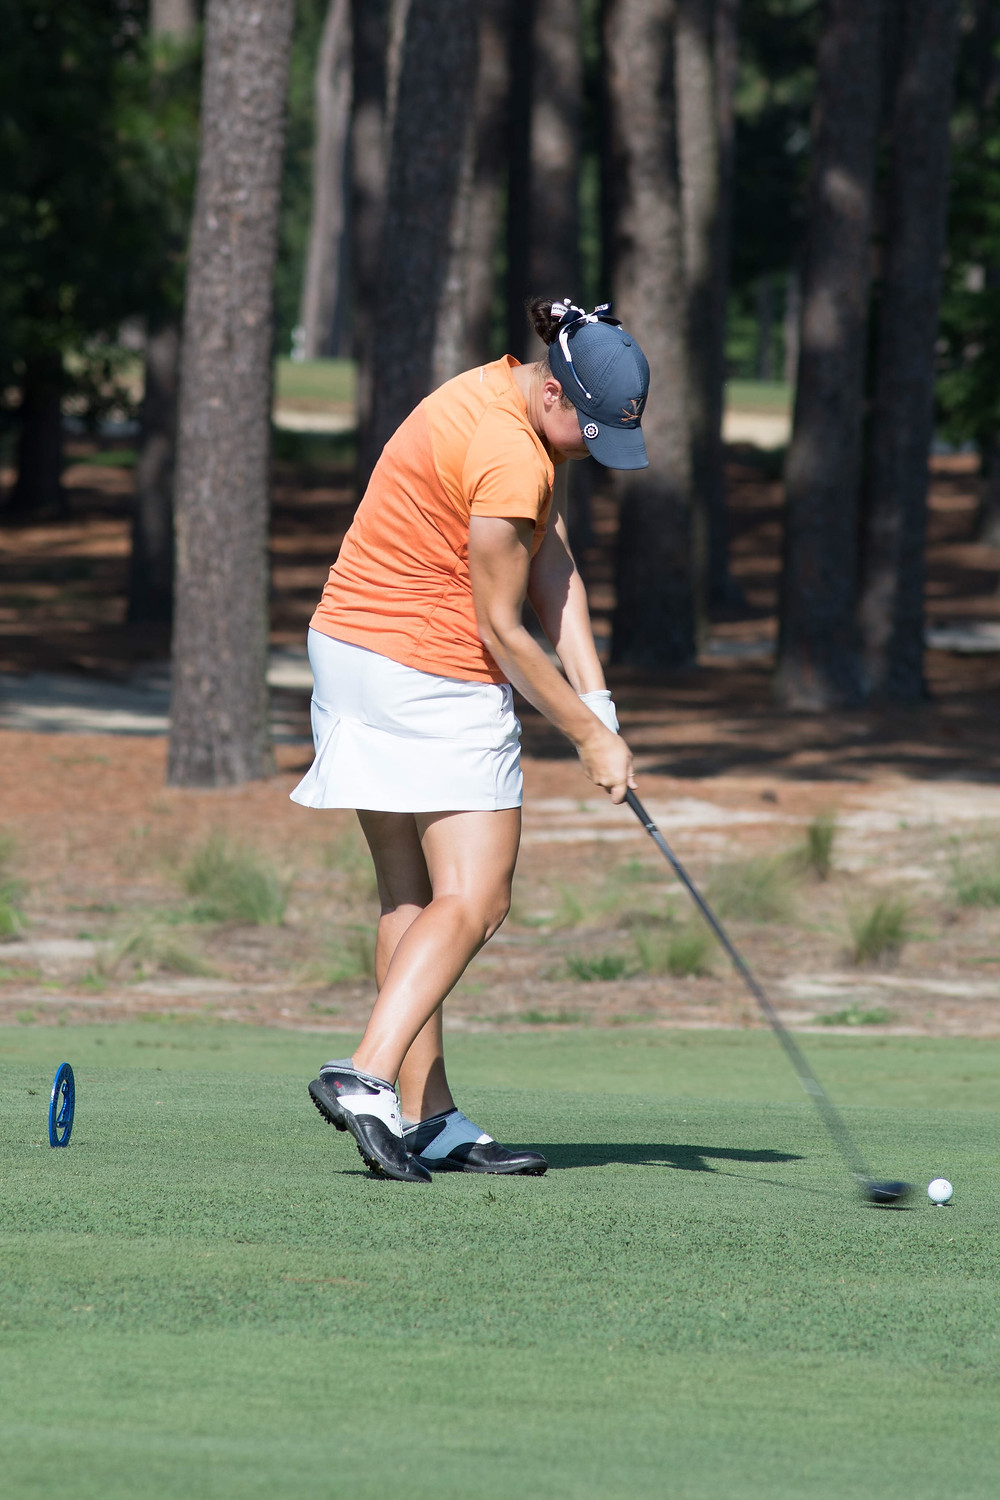 Anna Redding has made it her 4th consecutive Quarter Finals round at the Women's North and South Amateur. This photo of Redding was taken in 2017 on Pinehurst No. 2.